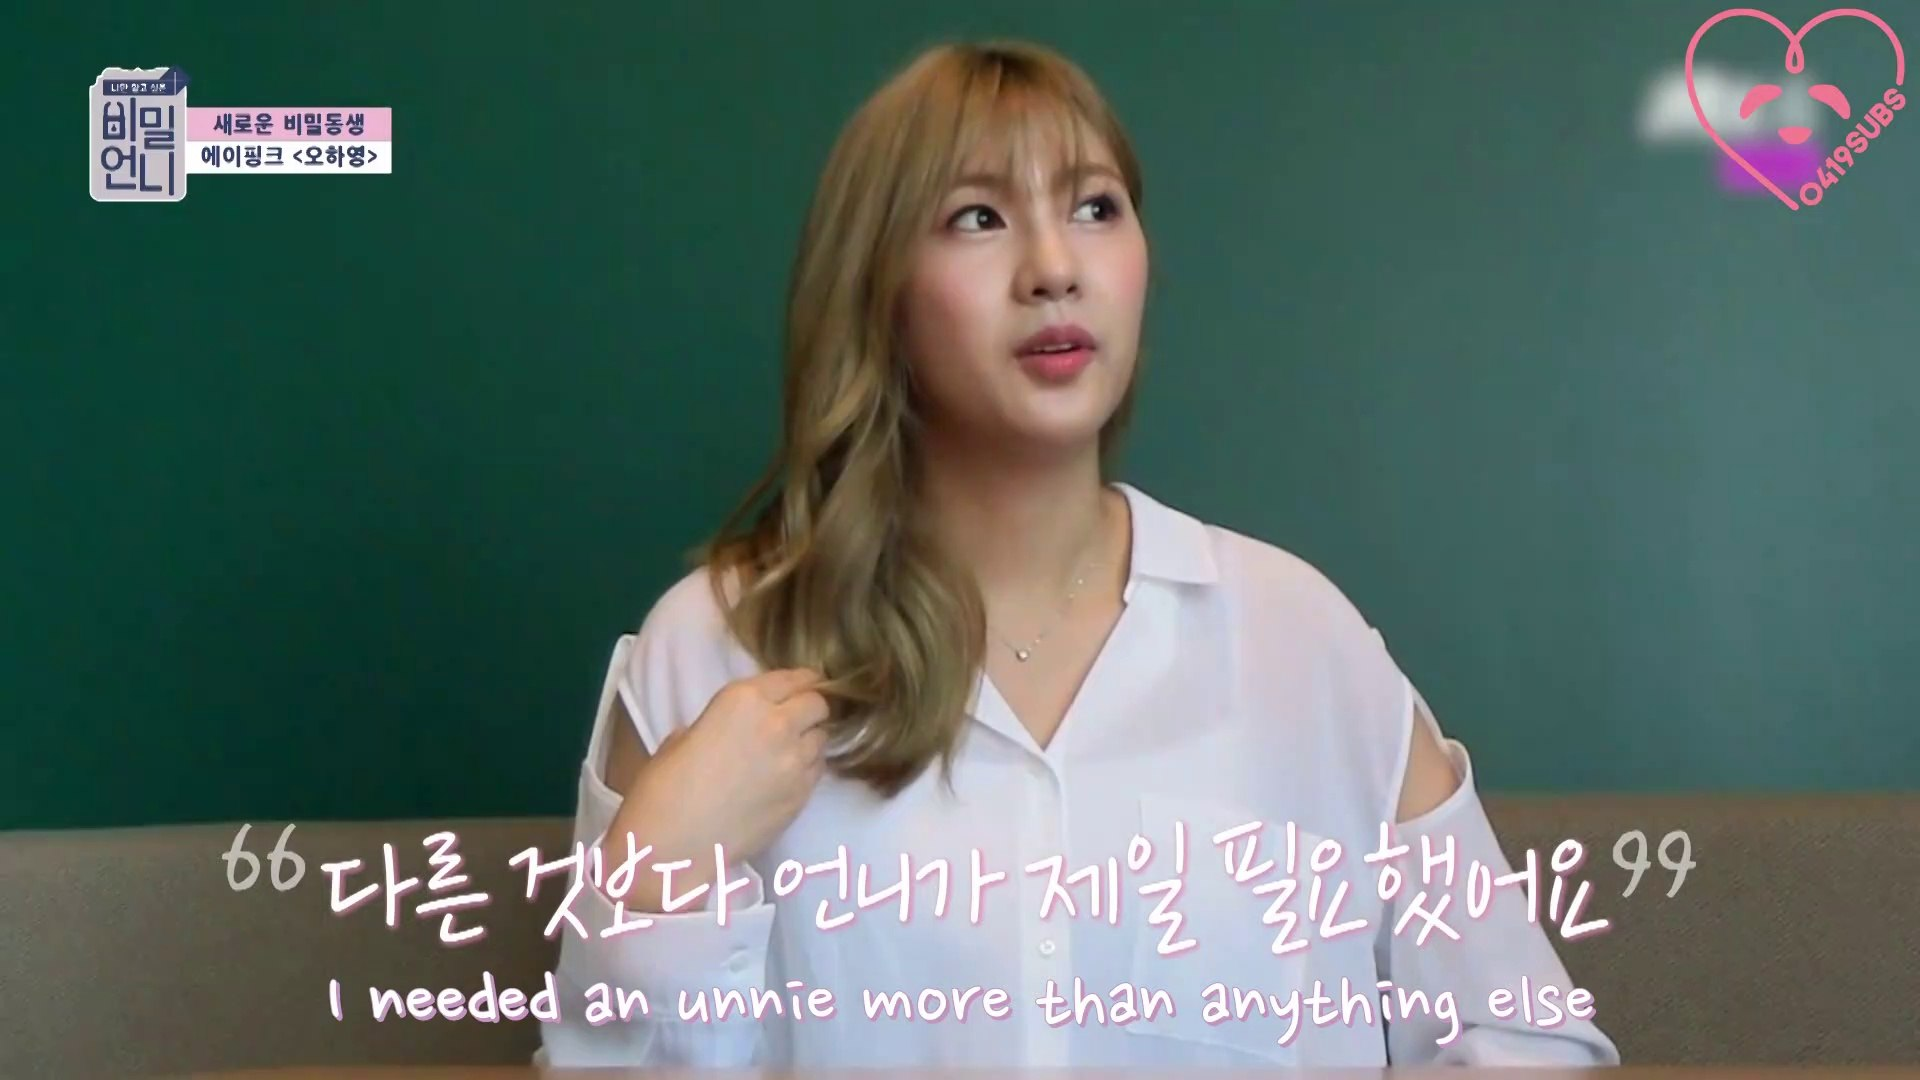 [0419SUBS] Secret Unnie Ep 1 - Apink Hayoung